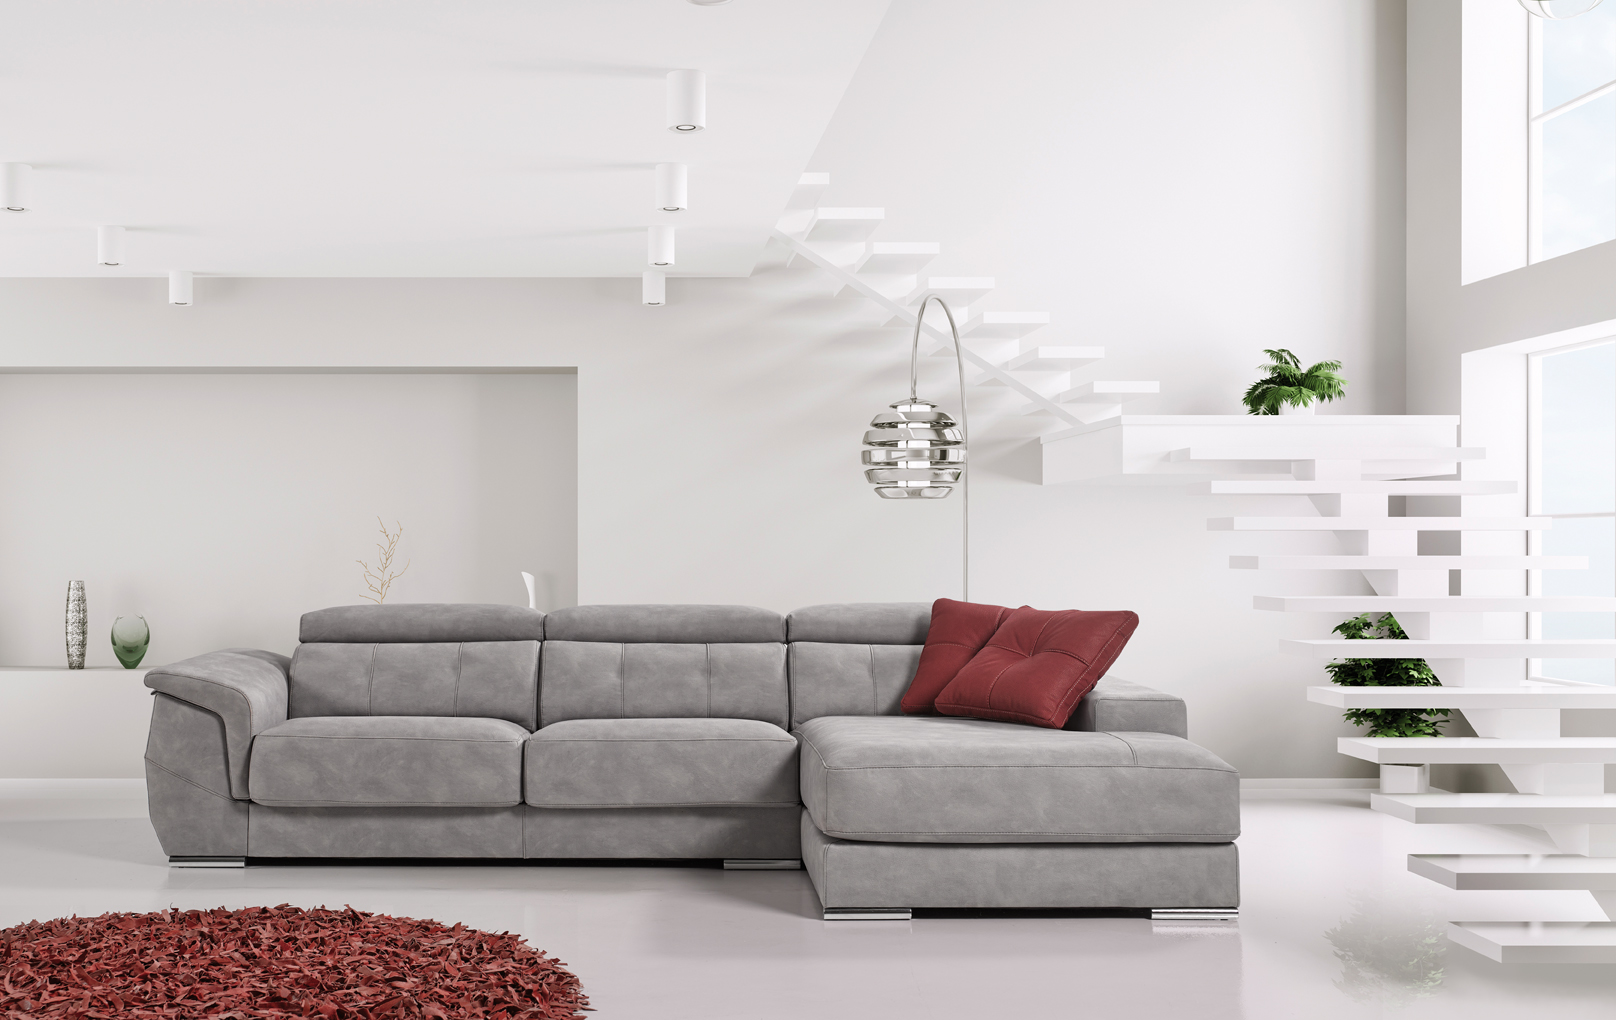 Tendencia decorativa mismo color en sof y pared for Sofas grises decoracion